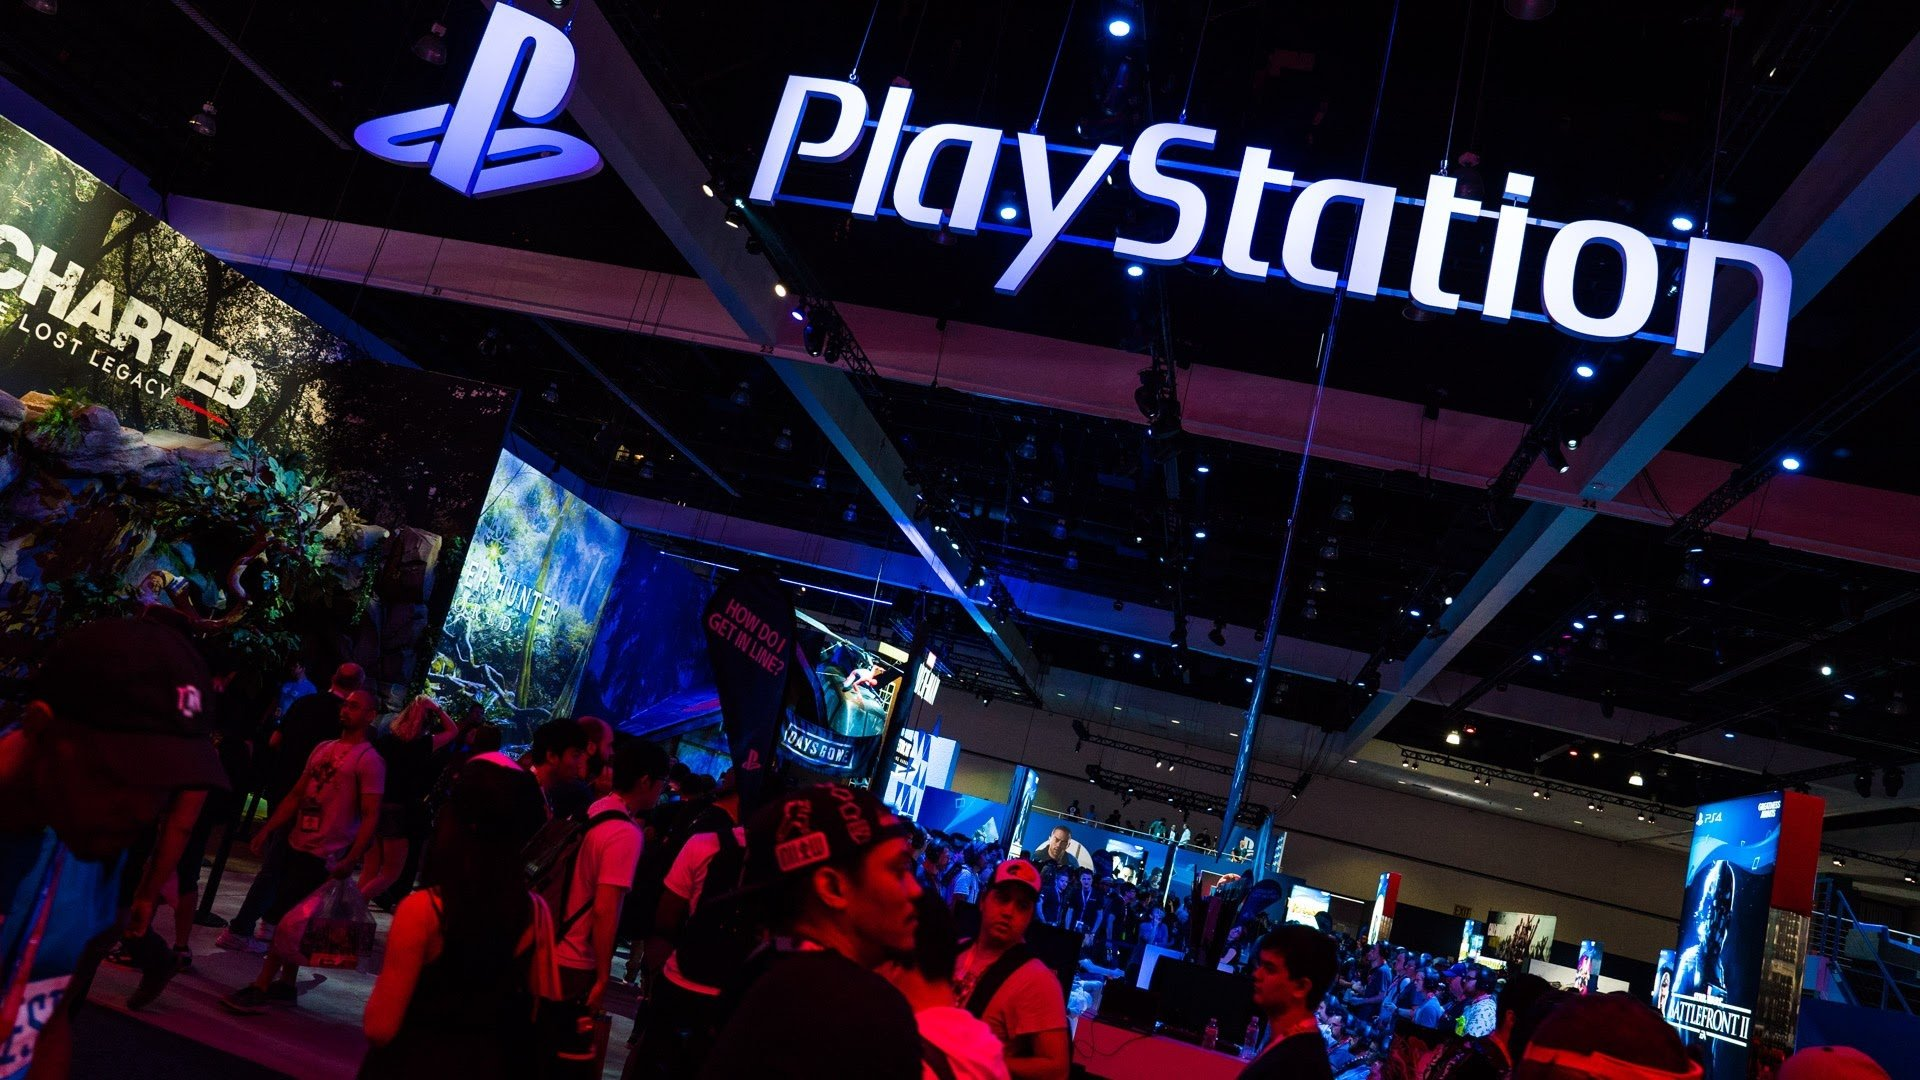 Feature: Sony Won't Be at E3 2019, But Here Are 7 Reasons to Still Be Hyped